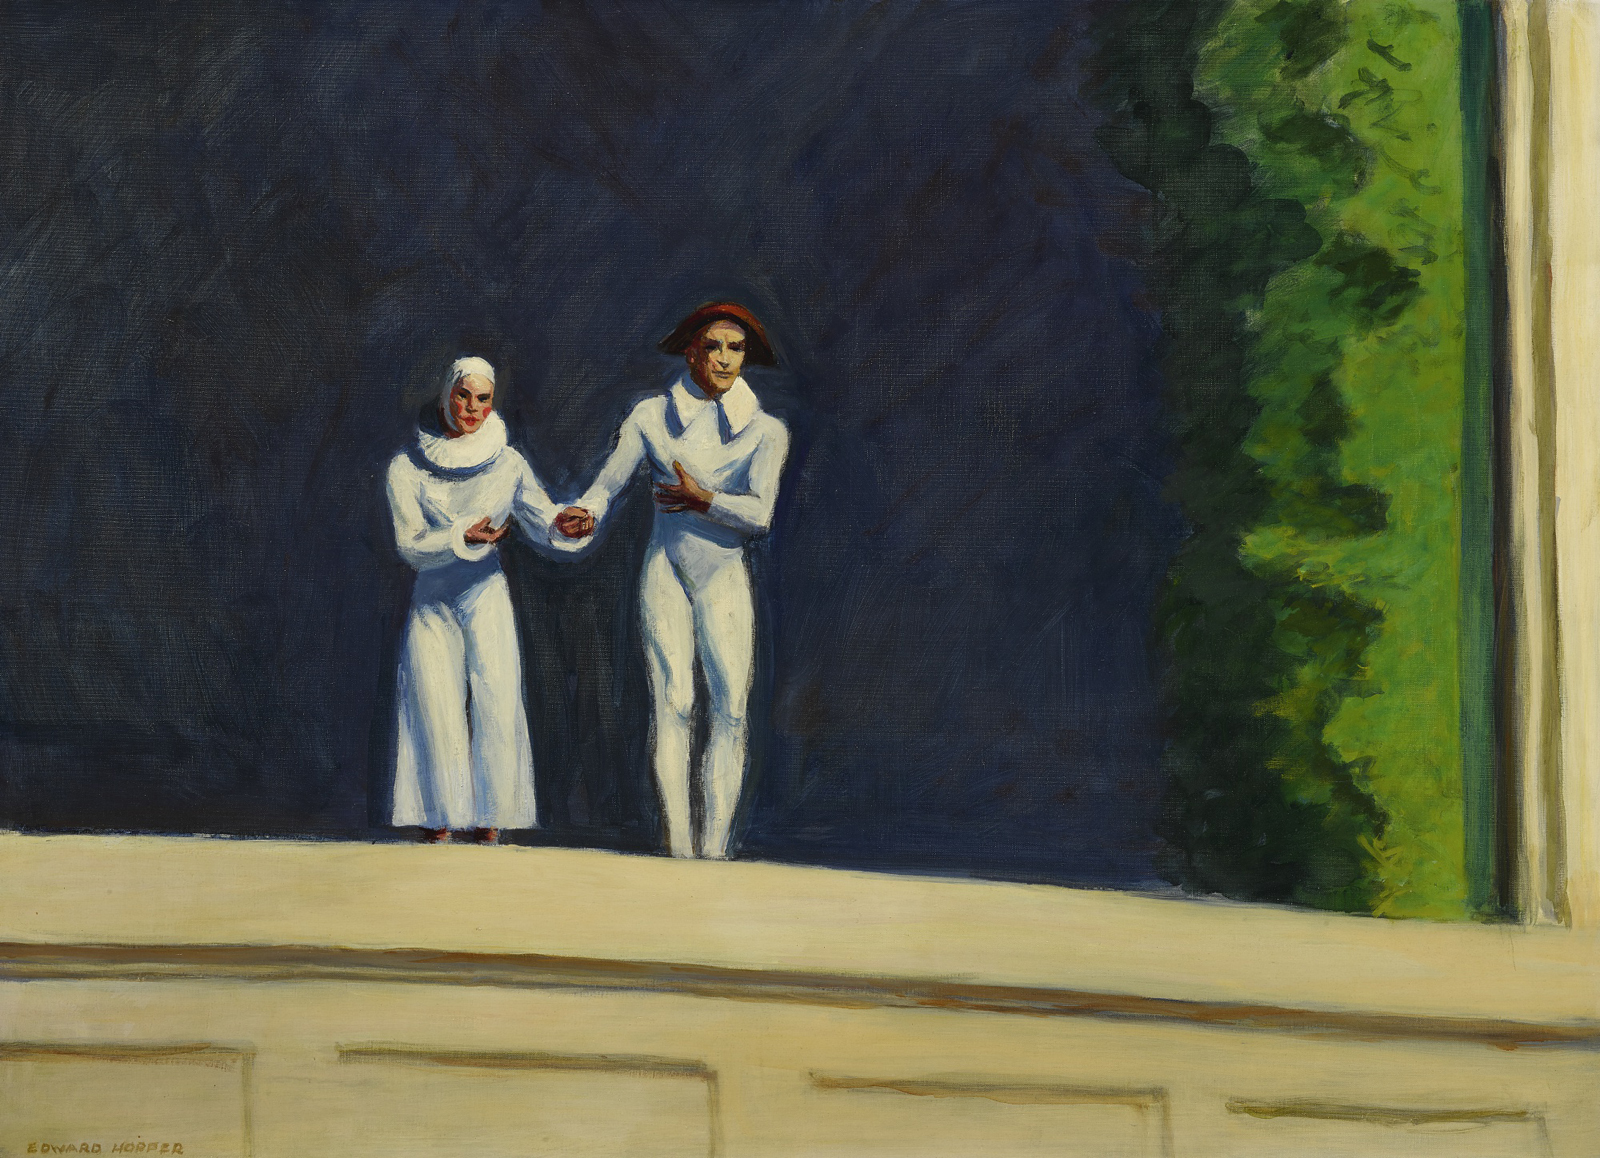 EdwardHopper-TwoCommedians1965_x1600